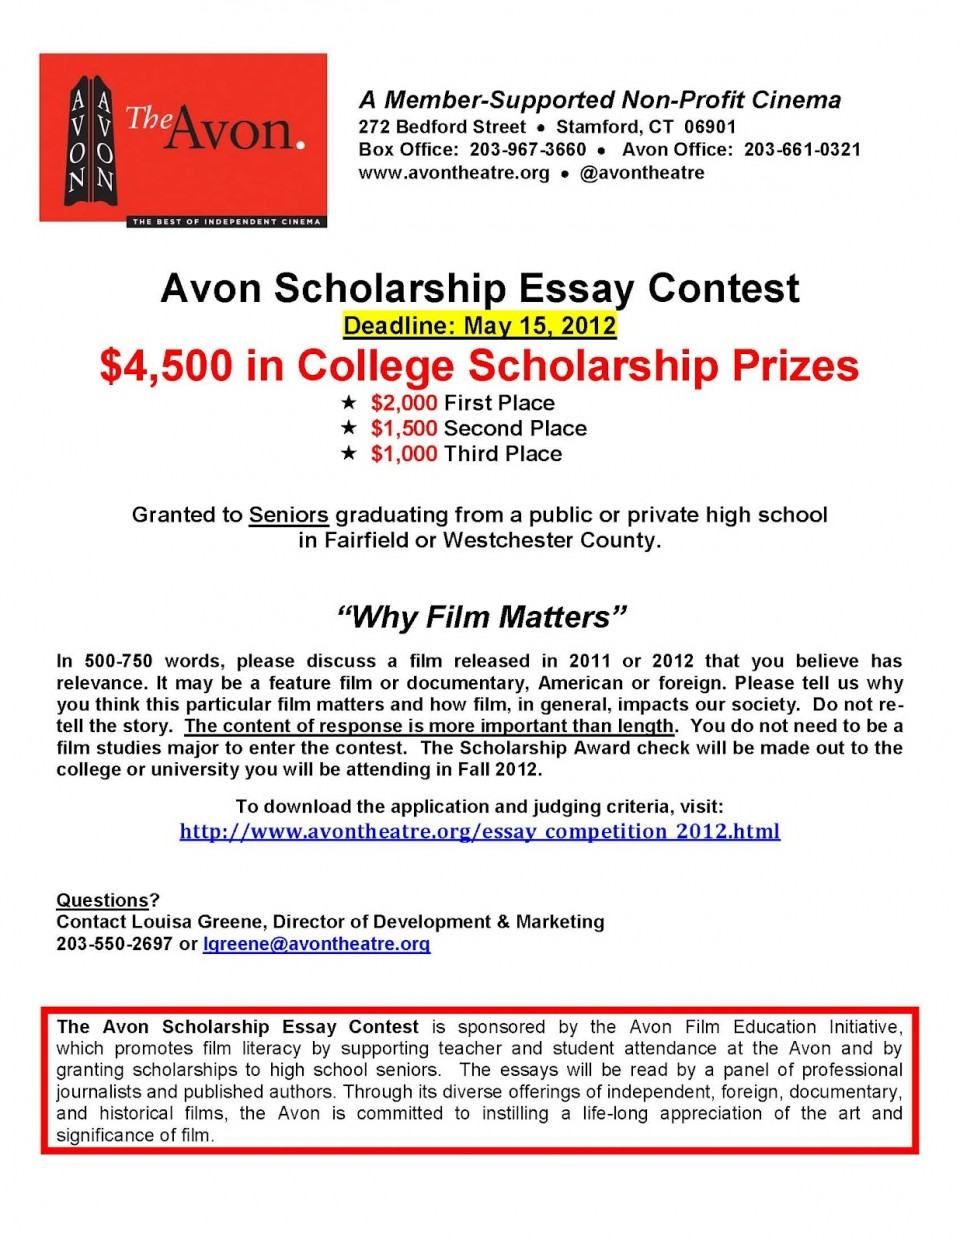 016 Avonscholarshipessaycontest2012flyer Essay Example Shocking Scholarships 2018 For International Students Examples Canada 2019 960